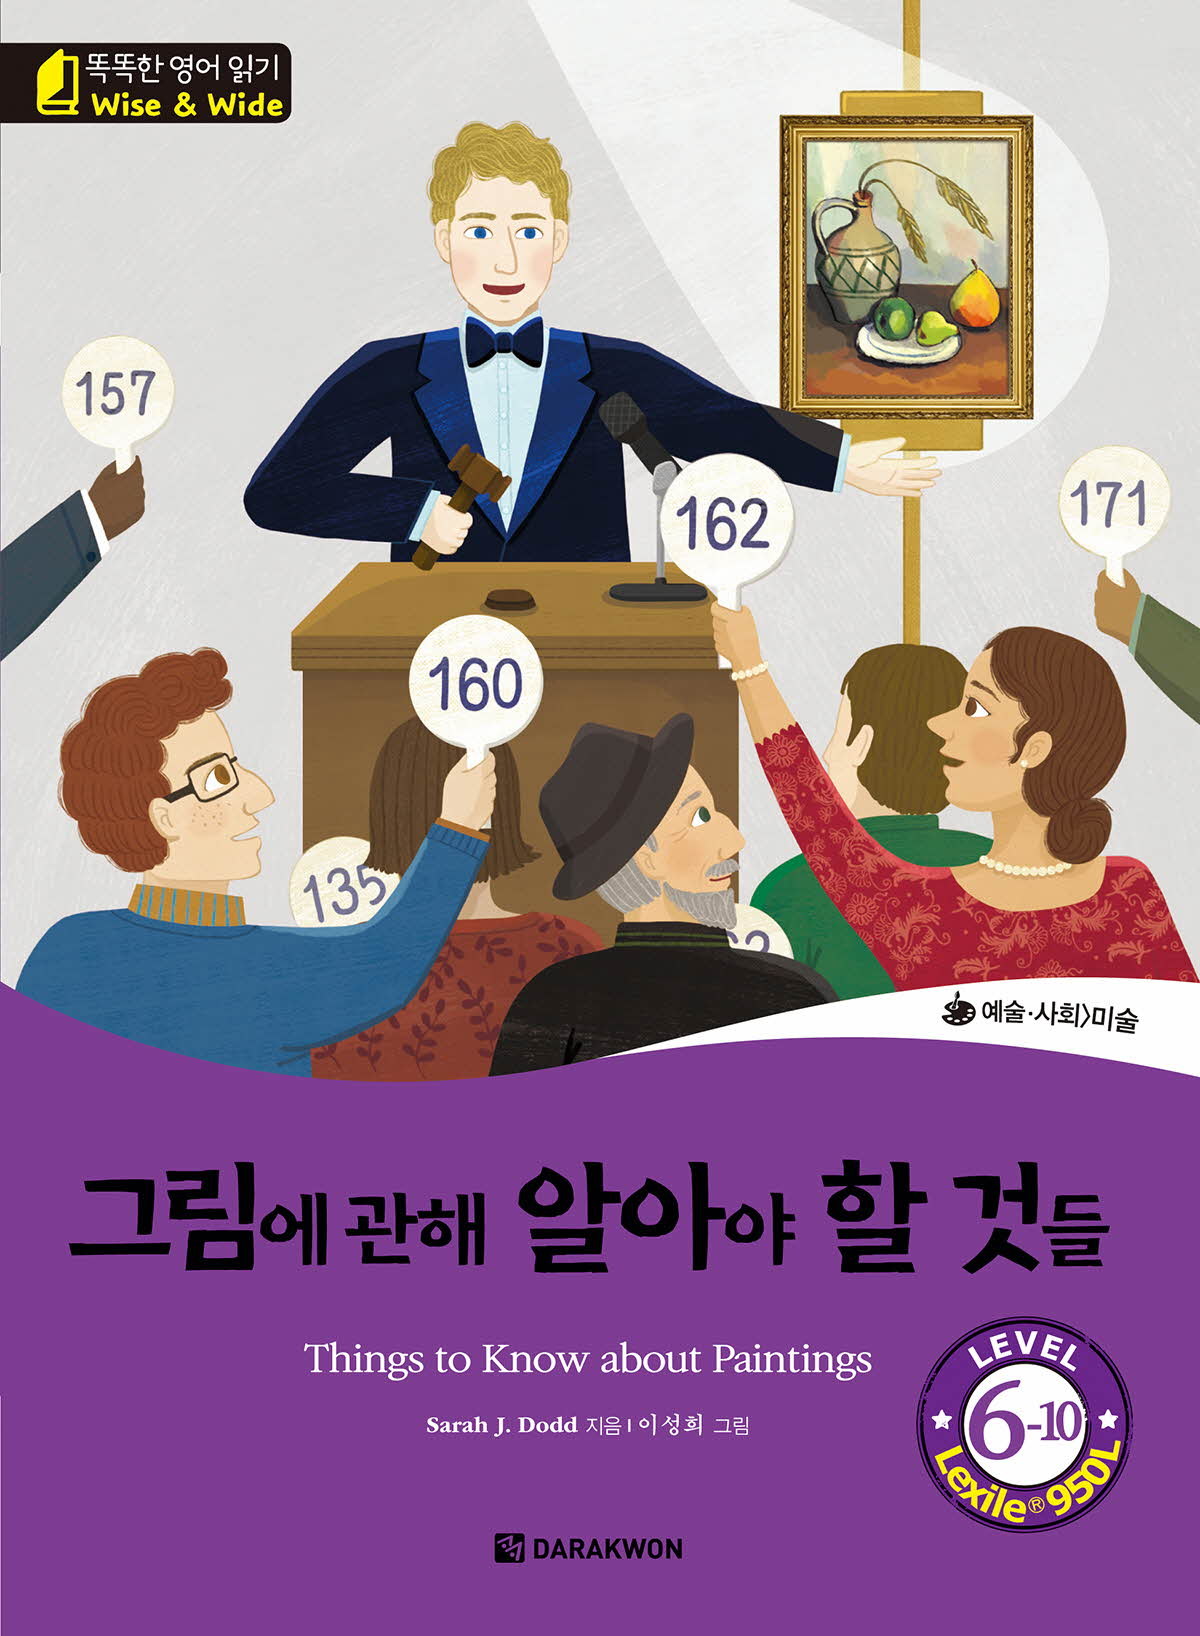 <a href='contents.php?CS_CODE=CS201803120060'>그림에 관해 알아야 할 것들 (Things to Know about Paintings)</a> 책표지